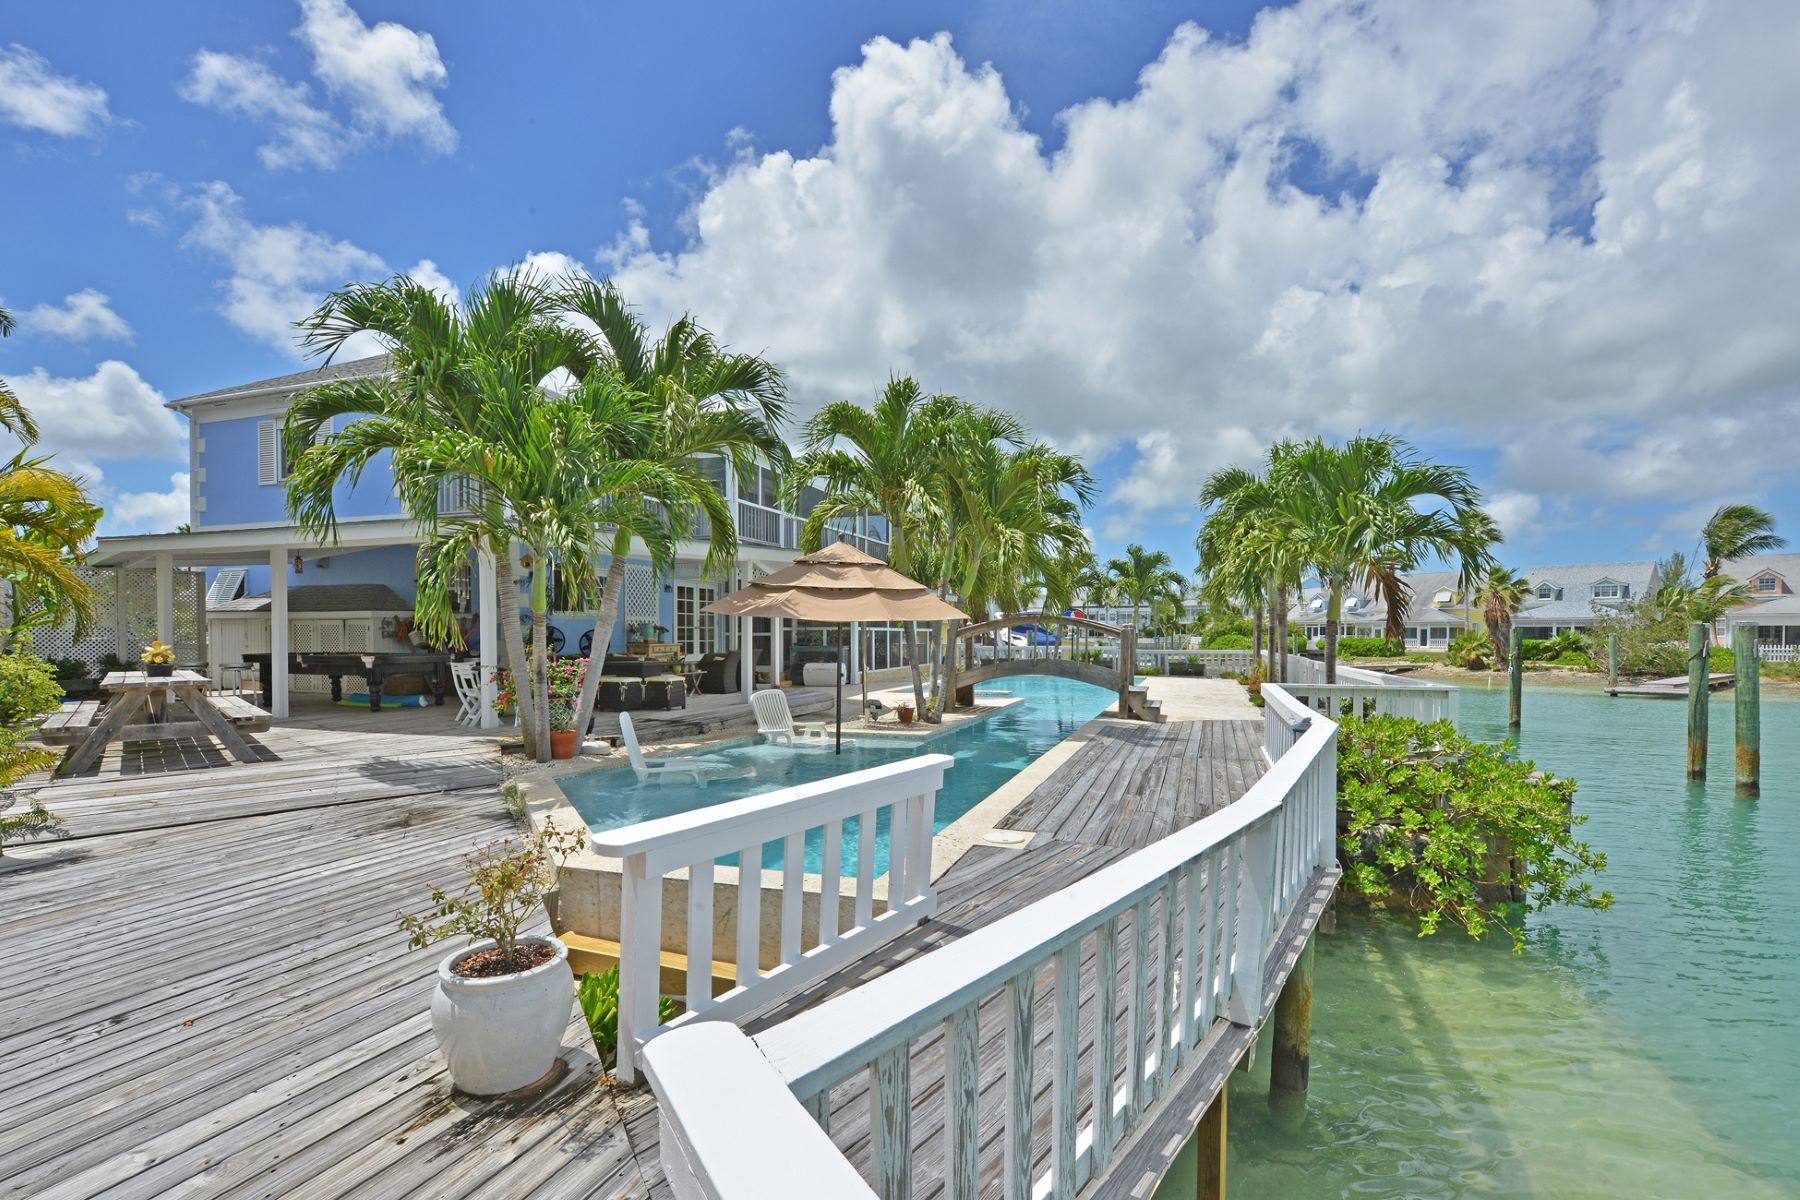 Single Family Home for Sale at Governors Cay, Sandyport Sandyport, Cable Beach, Nassau And Paradise Island Bahamas